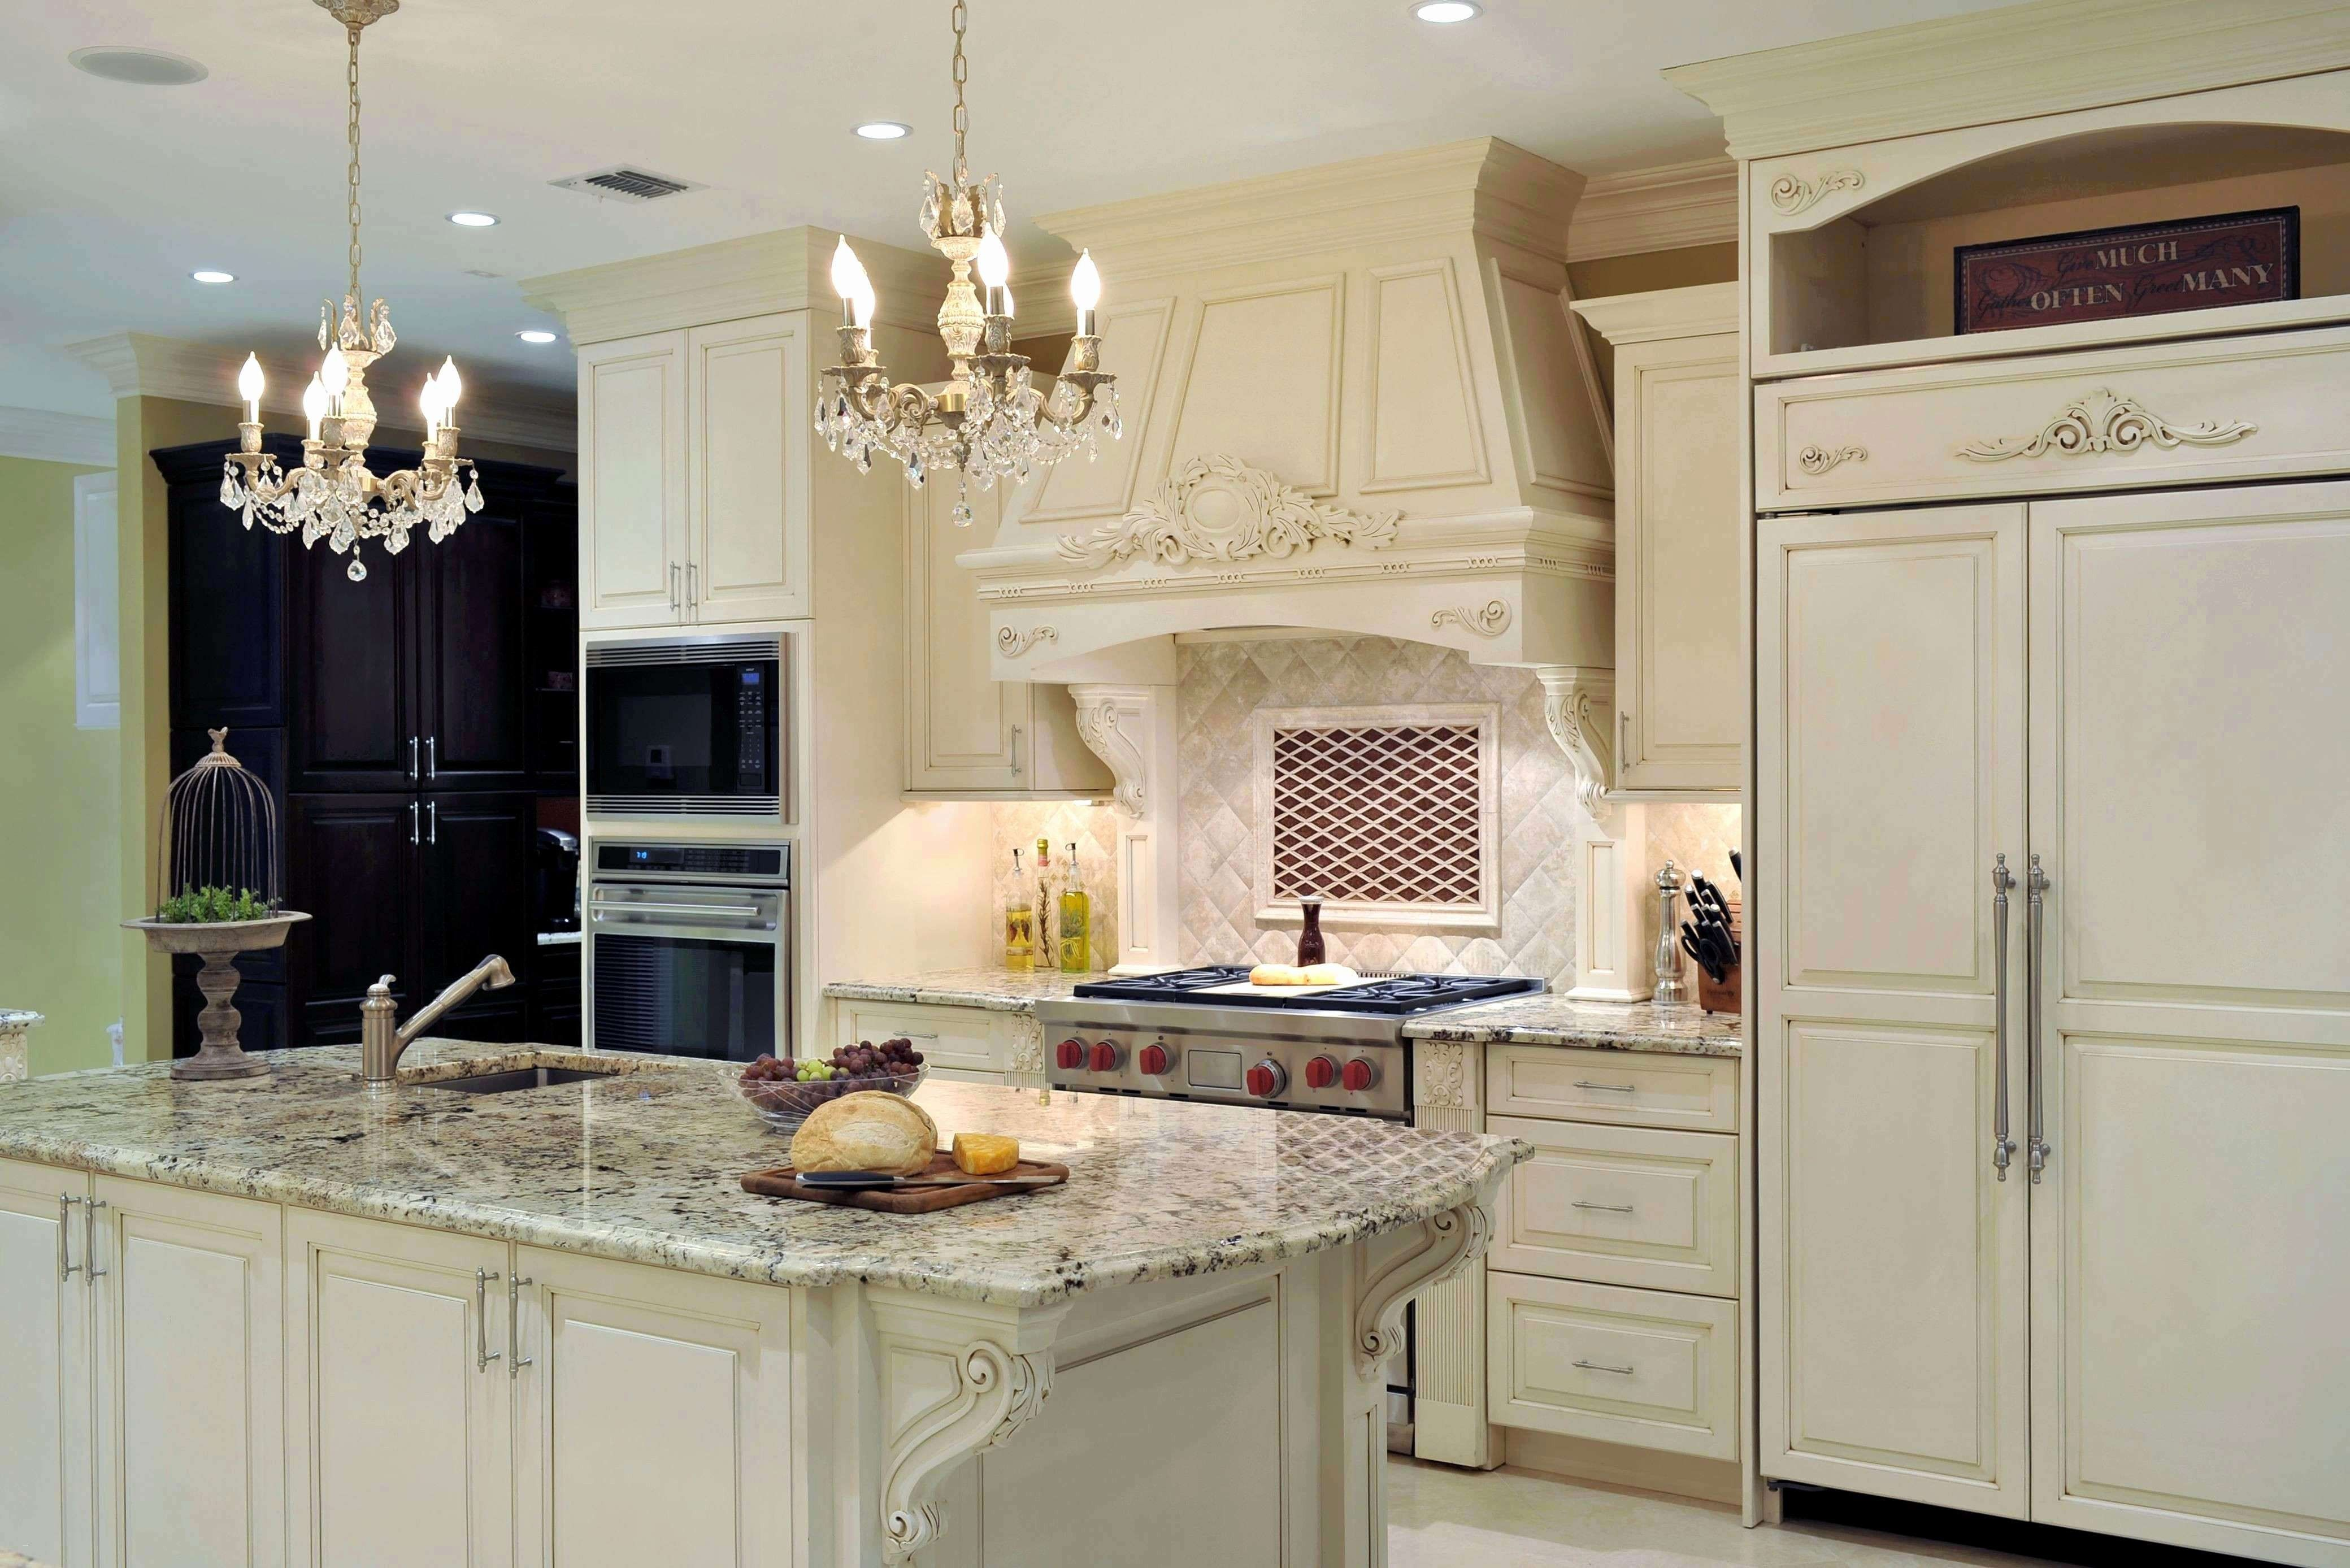 Luxury Replace Kitchen Cabinet Doors Only The Most Awesome And Lovely Replace Kitchen Cabinet Doors Only Desain Dapur Kecil Desain Dapur Warna Lemari Dapur